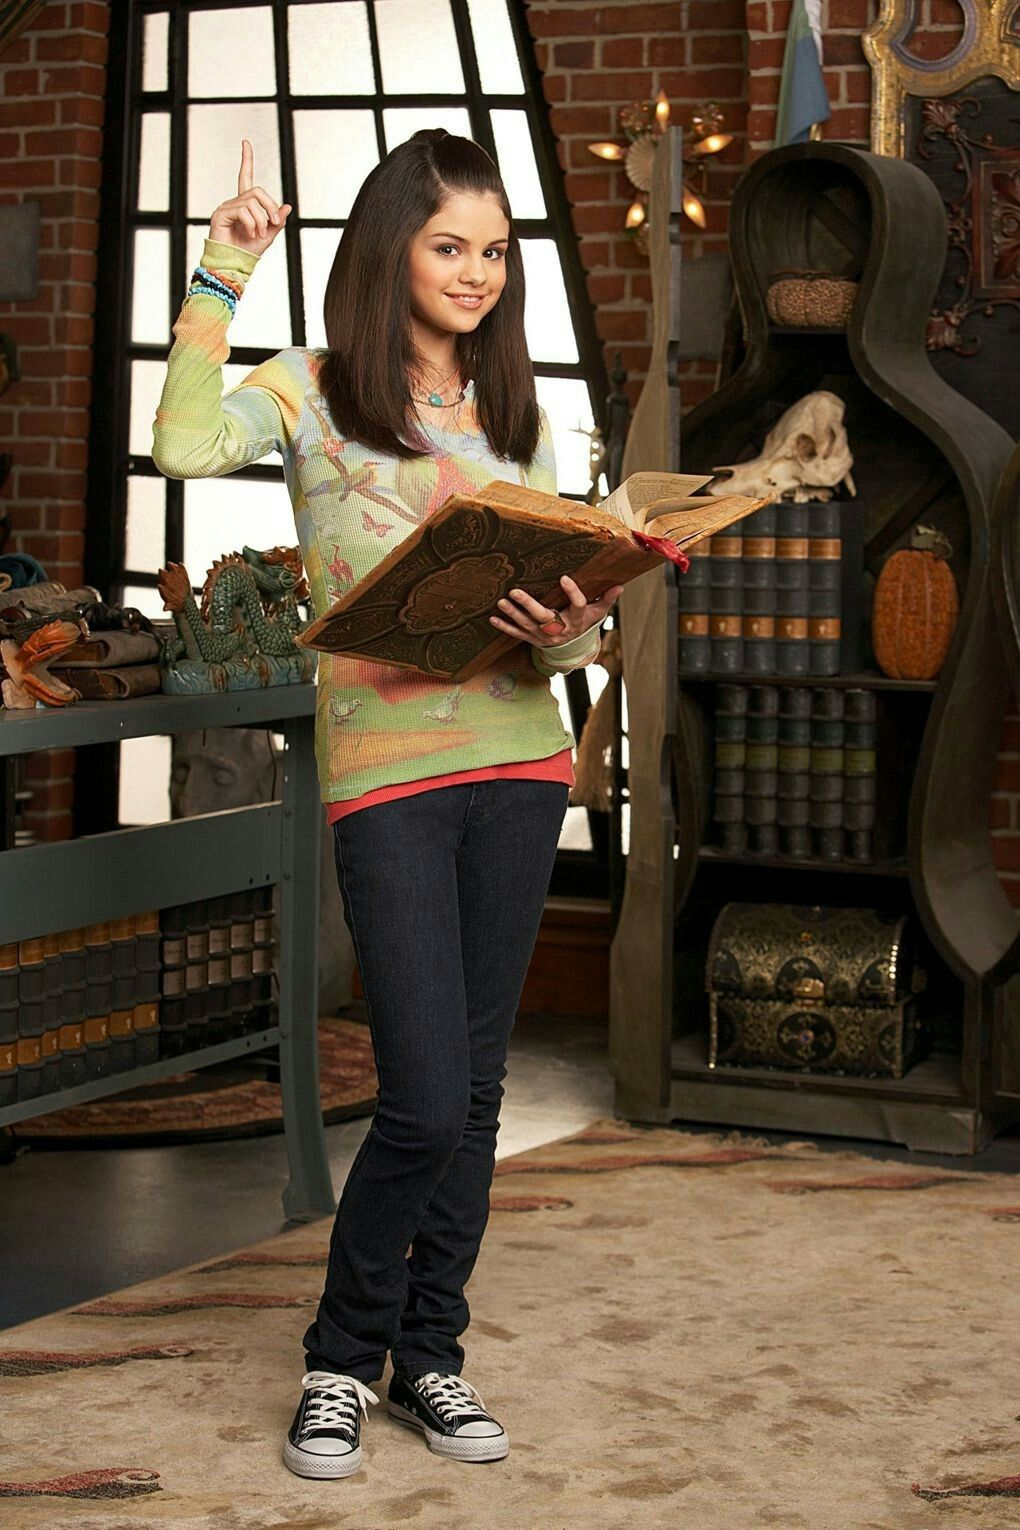 Pin by katie Dunn on Beauties Wizards of waverly place